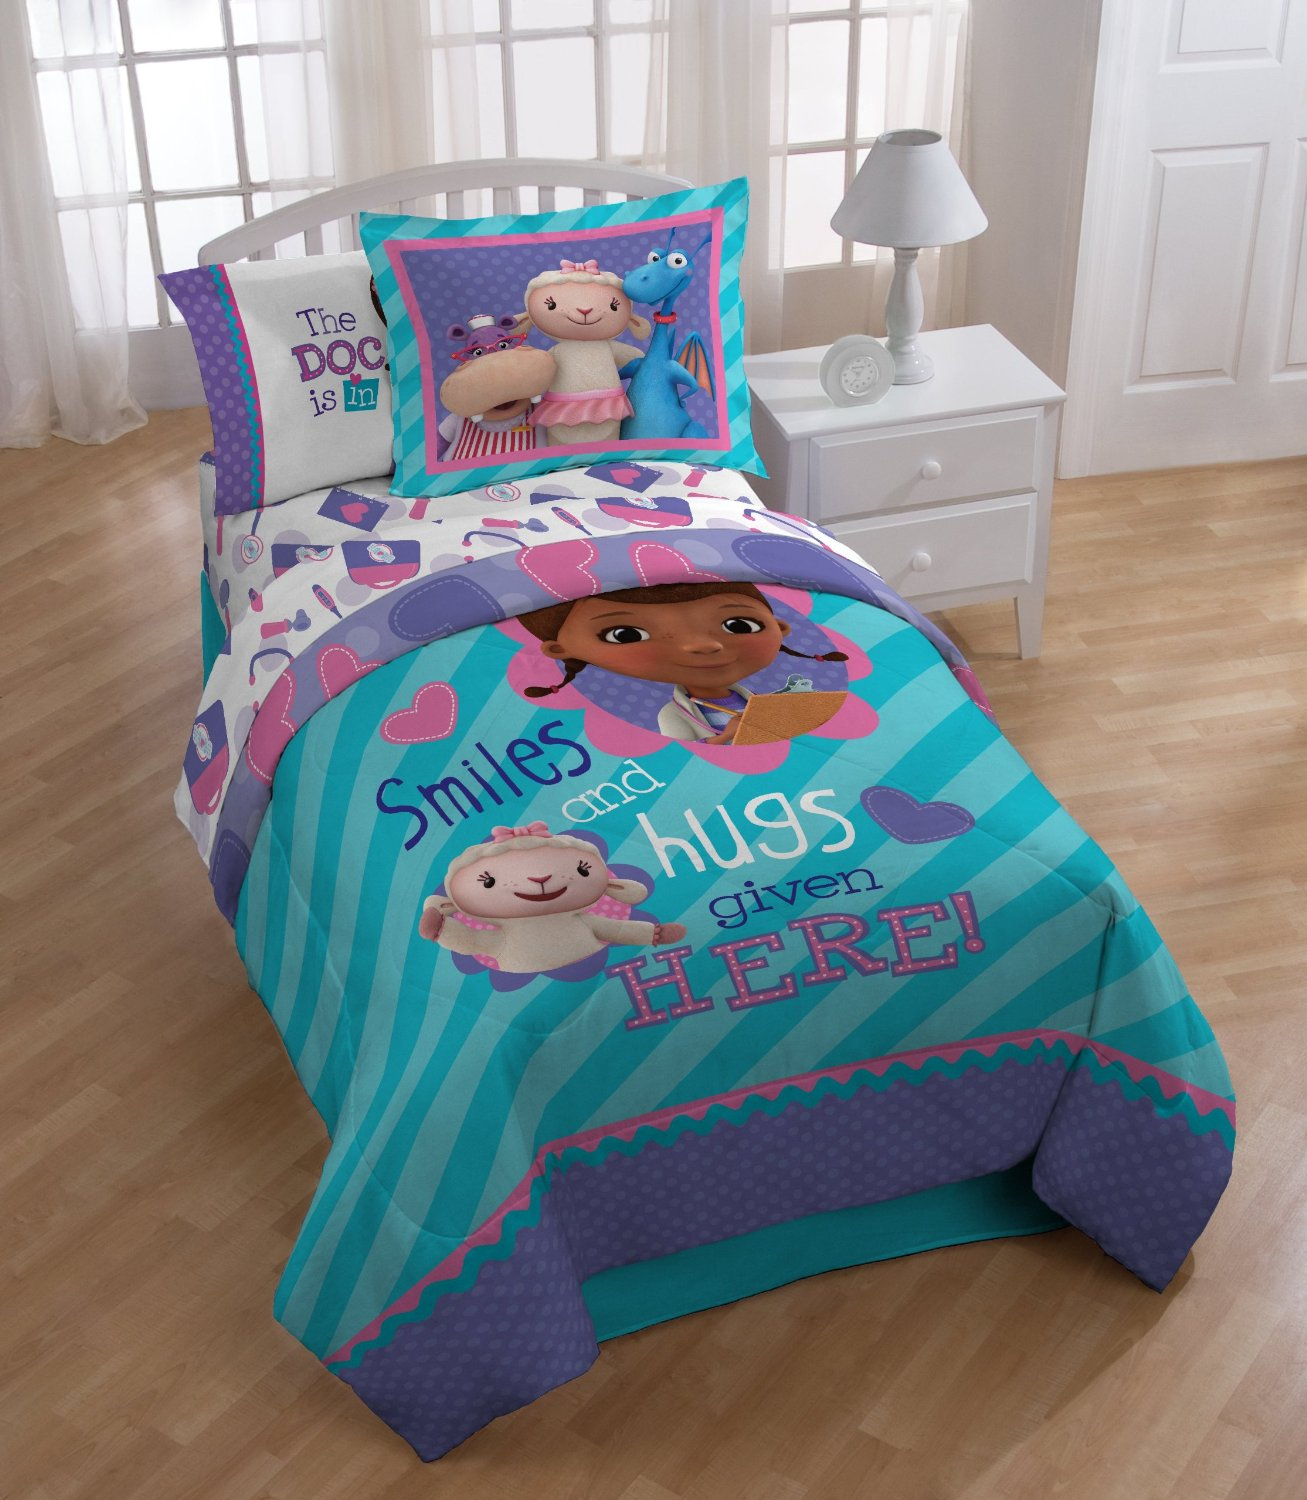 Bubble Guppie Bedding | Bubble Guppies Bedding | Bubble Guppie Toddler Bedding